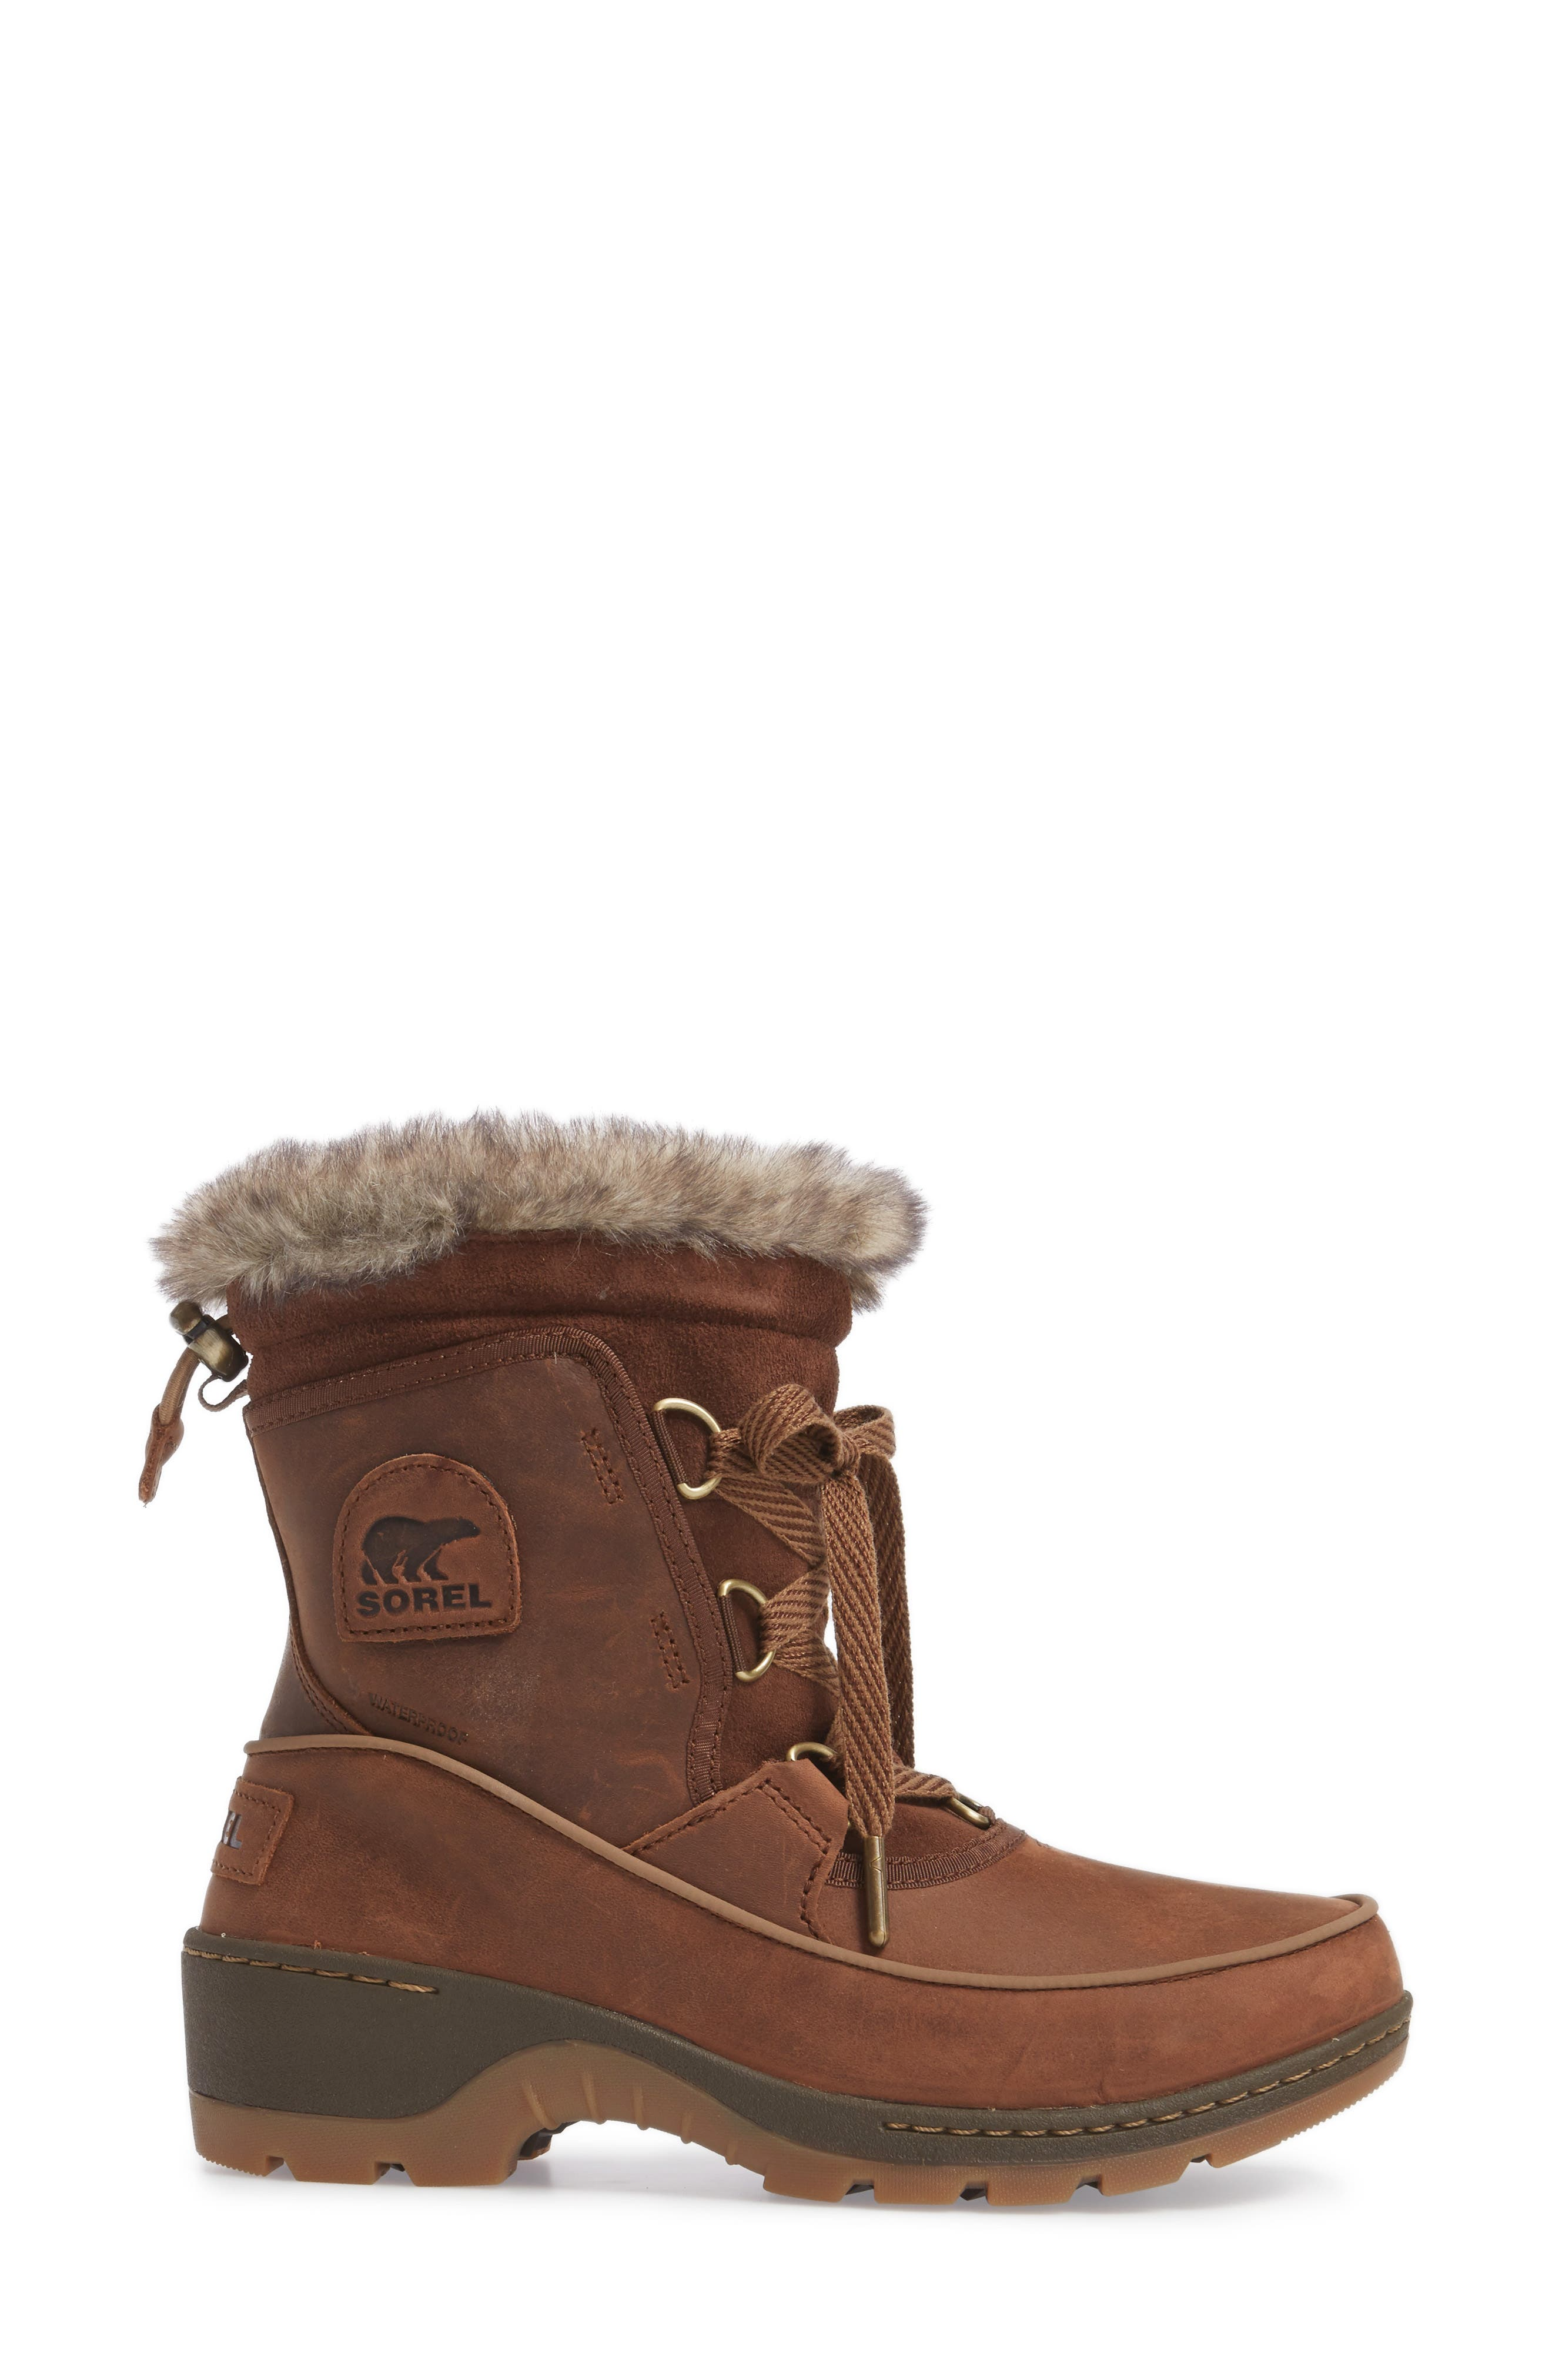 Tivoli II Insulated Winter Boot with Faux Fur Trim,                             Alternate thumbnail 6, color,